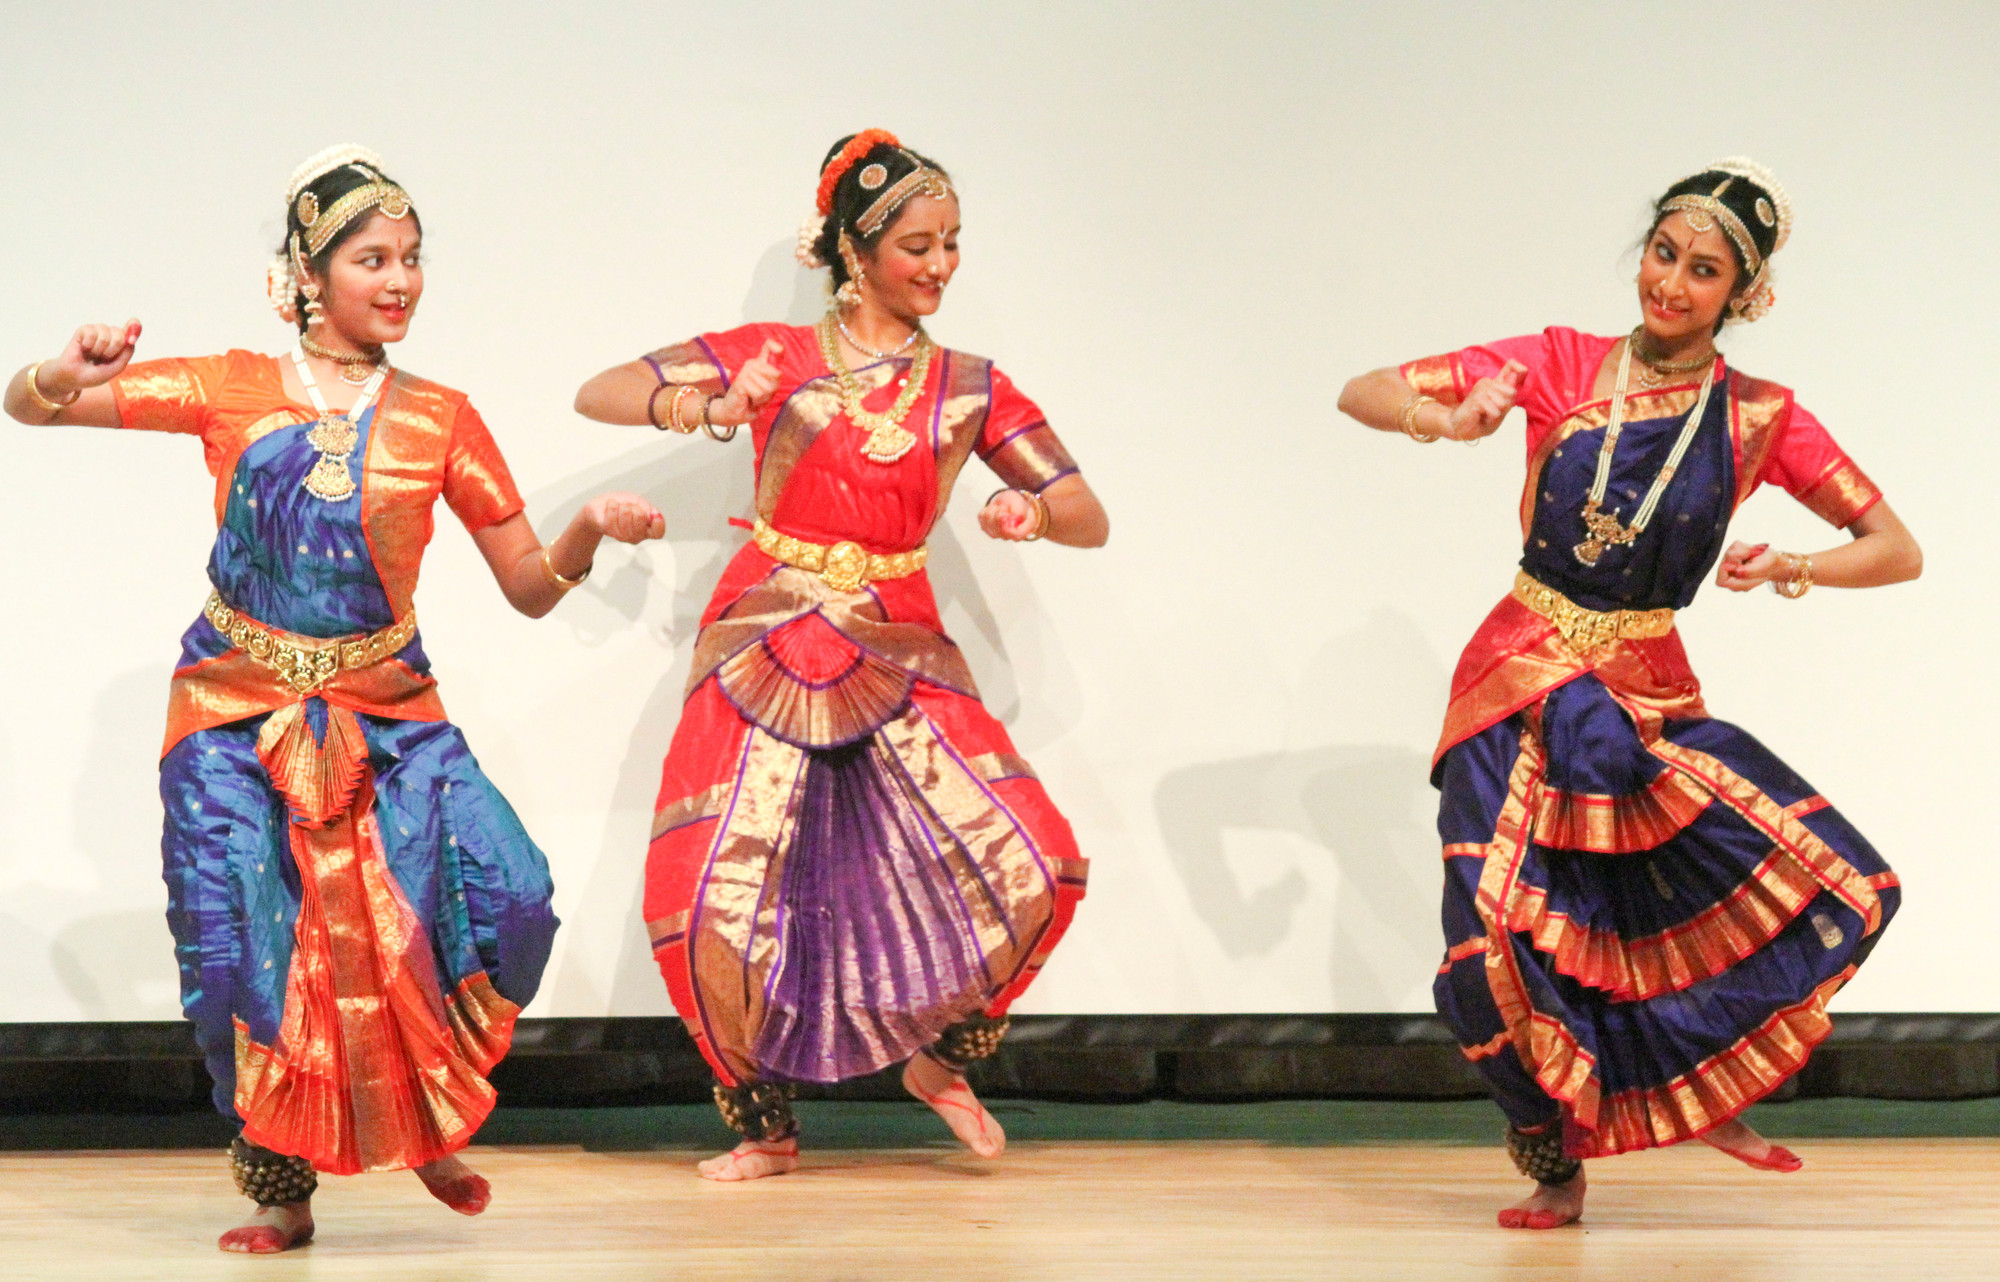 Various Indian dances were performed at the 11th annual Five Town Indian Association Children's Day. From left were Kalpita Chakote, Renuka Diwan, and Anoska Roy.